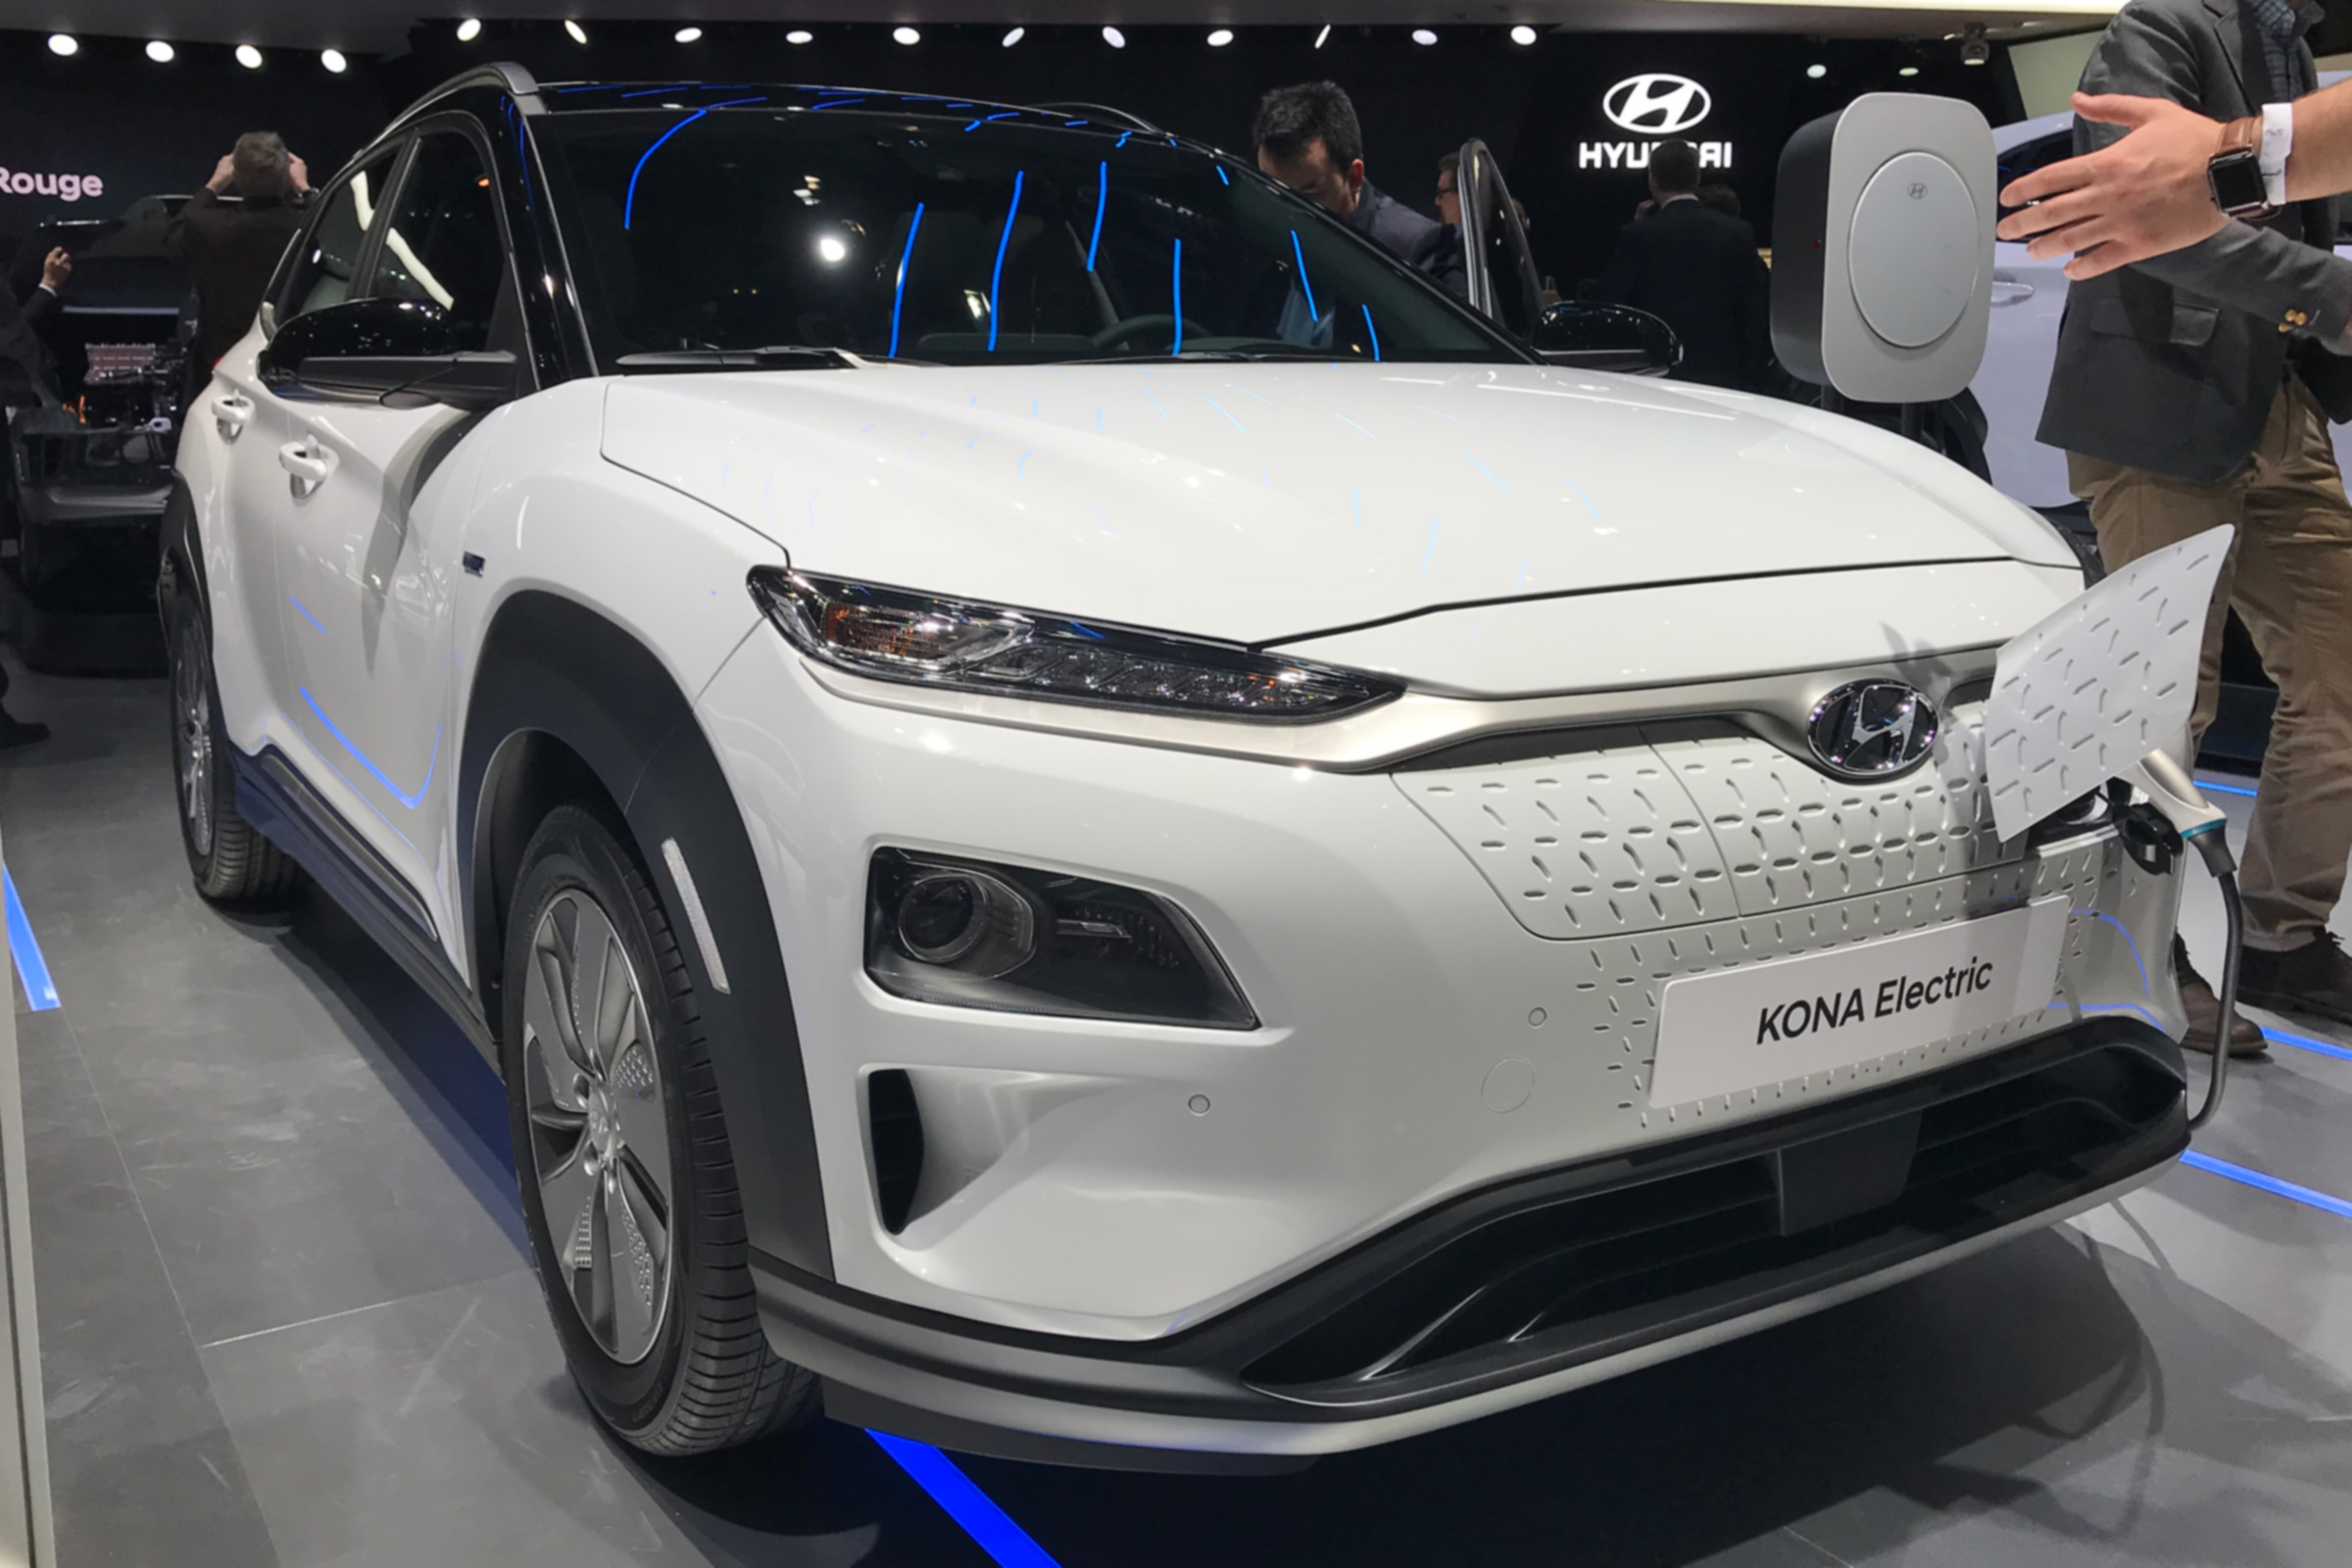 Hyundai Kona electric SUV launched in India